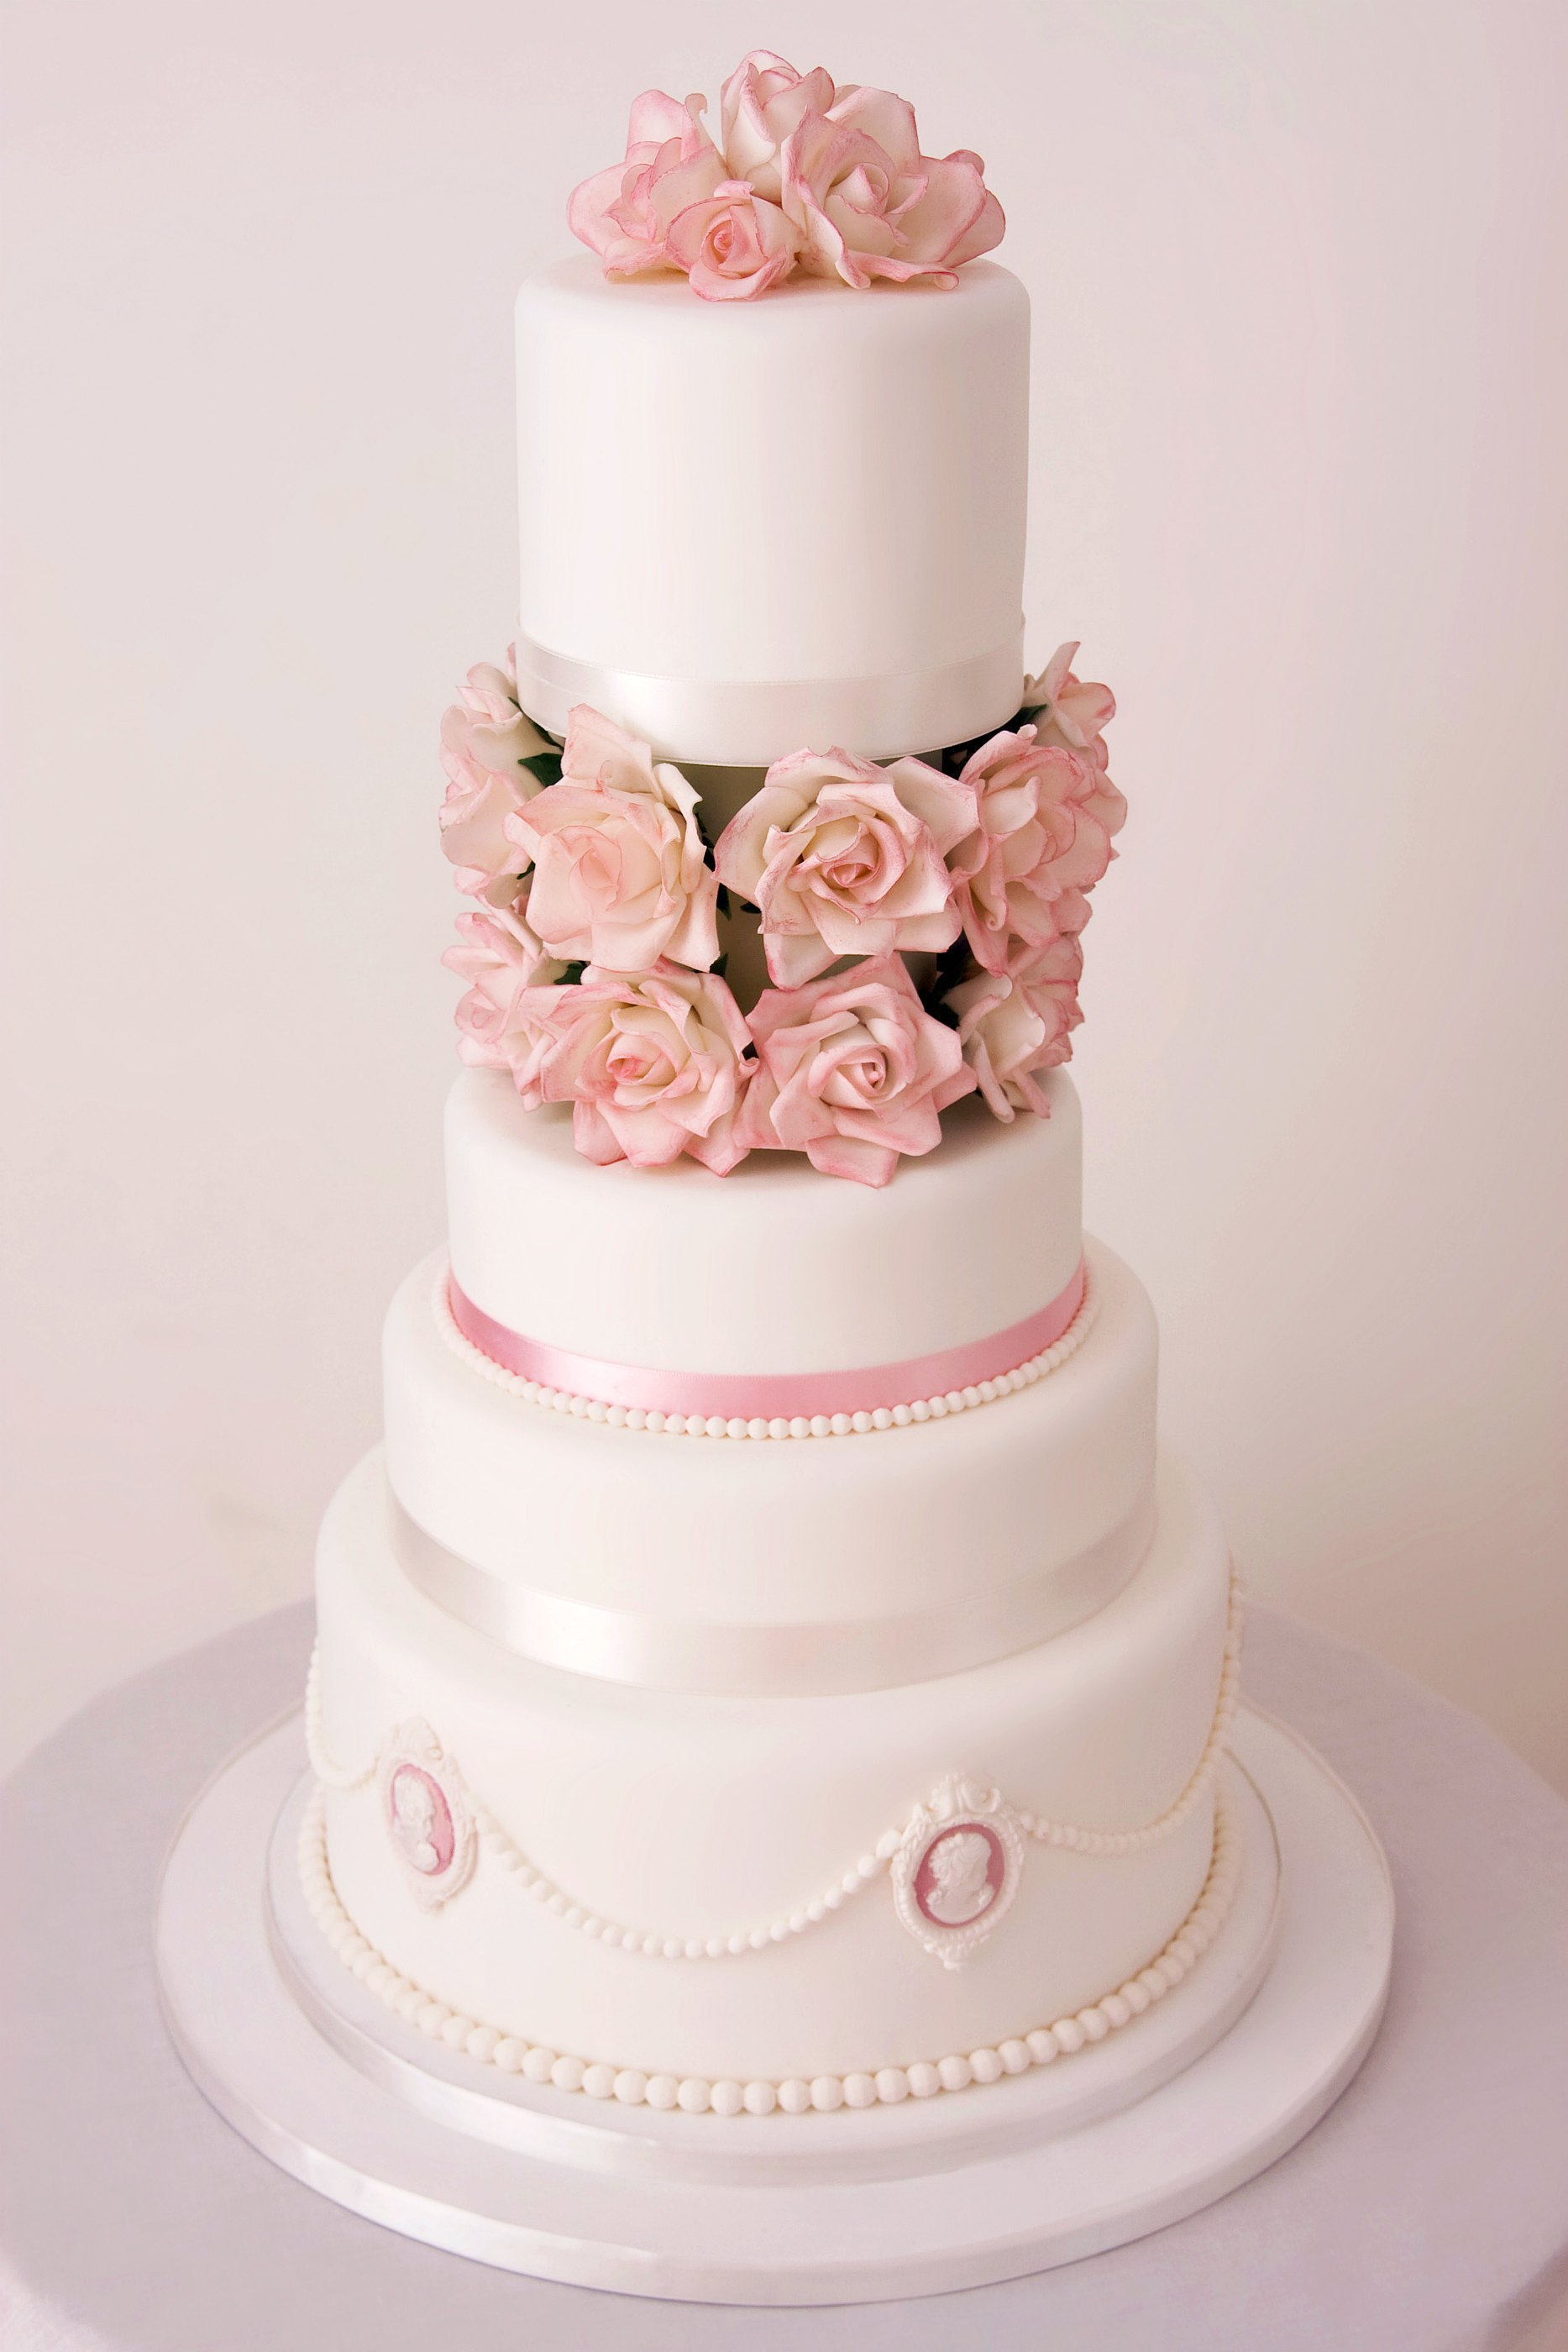 4 tier sugar rose wedding cake